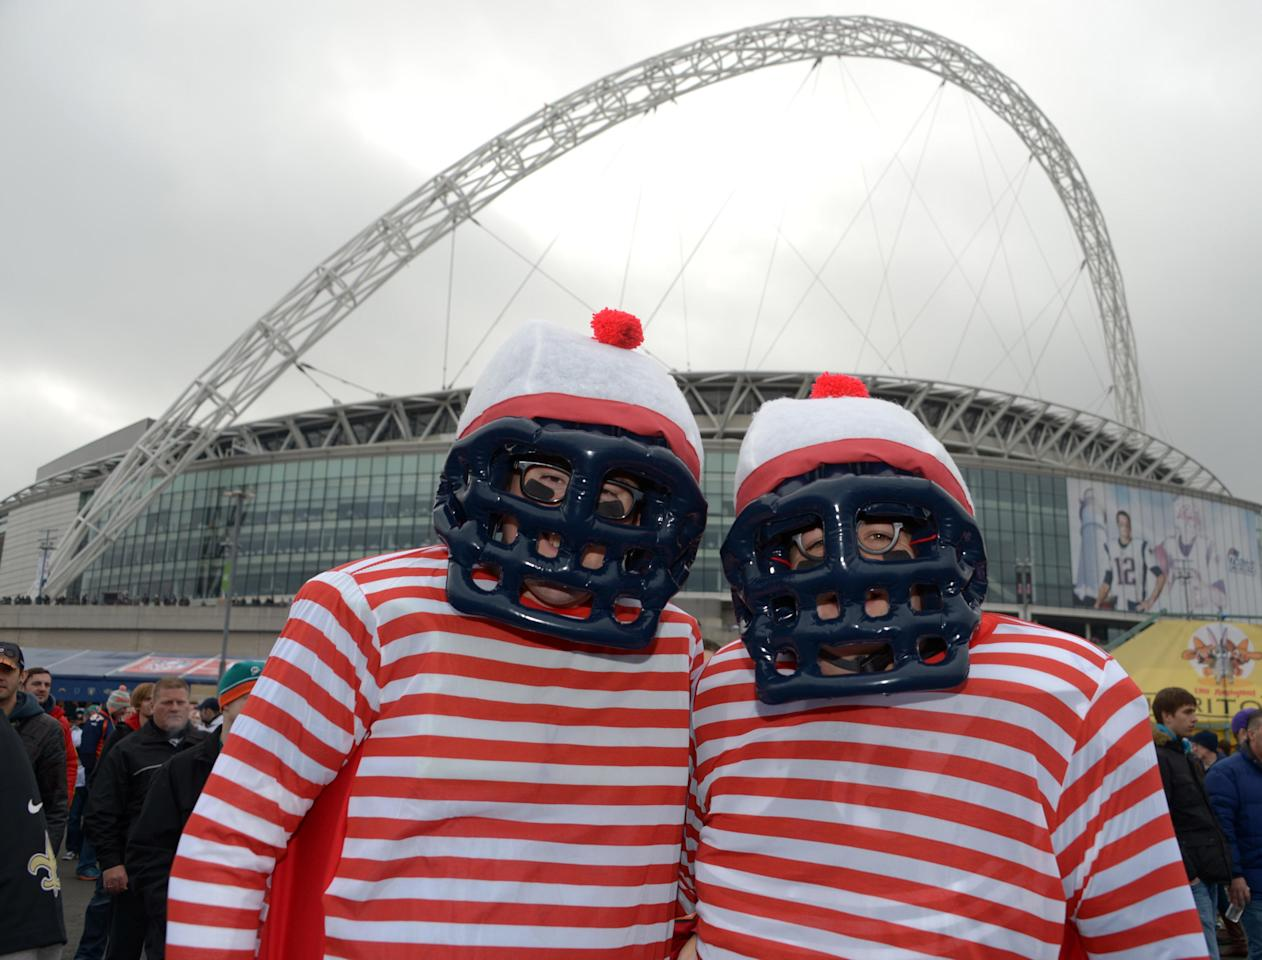 Oct 28,2012; London, UNITED KINGDOM; NFL fans Richard Hinds (left) and Dean Kingham pose during tailgate festivities before the 2012 NFL International Series game between the New England Patriots and St. Louis Rams at Wembley Stadium. Mandatory Credit: Kirby Lee/Image of Sport-US PRESSWIRE